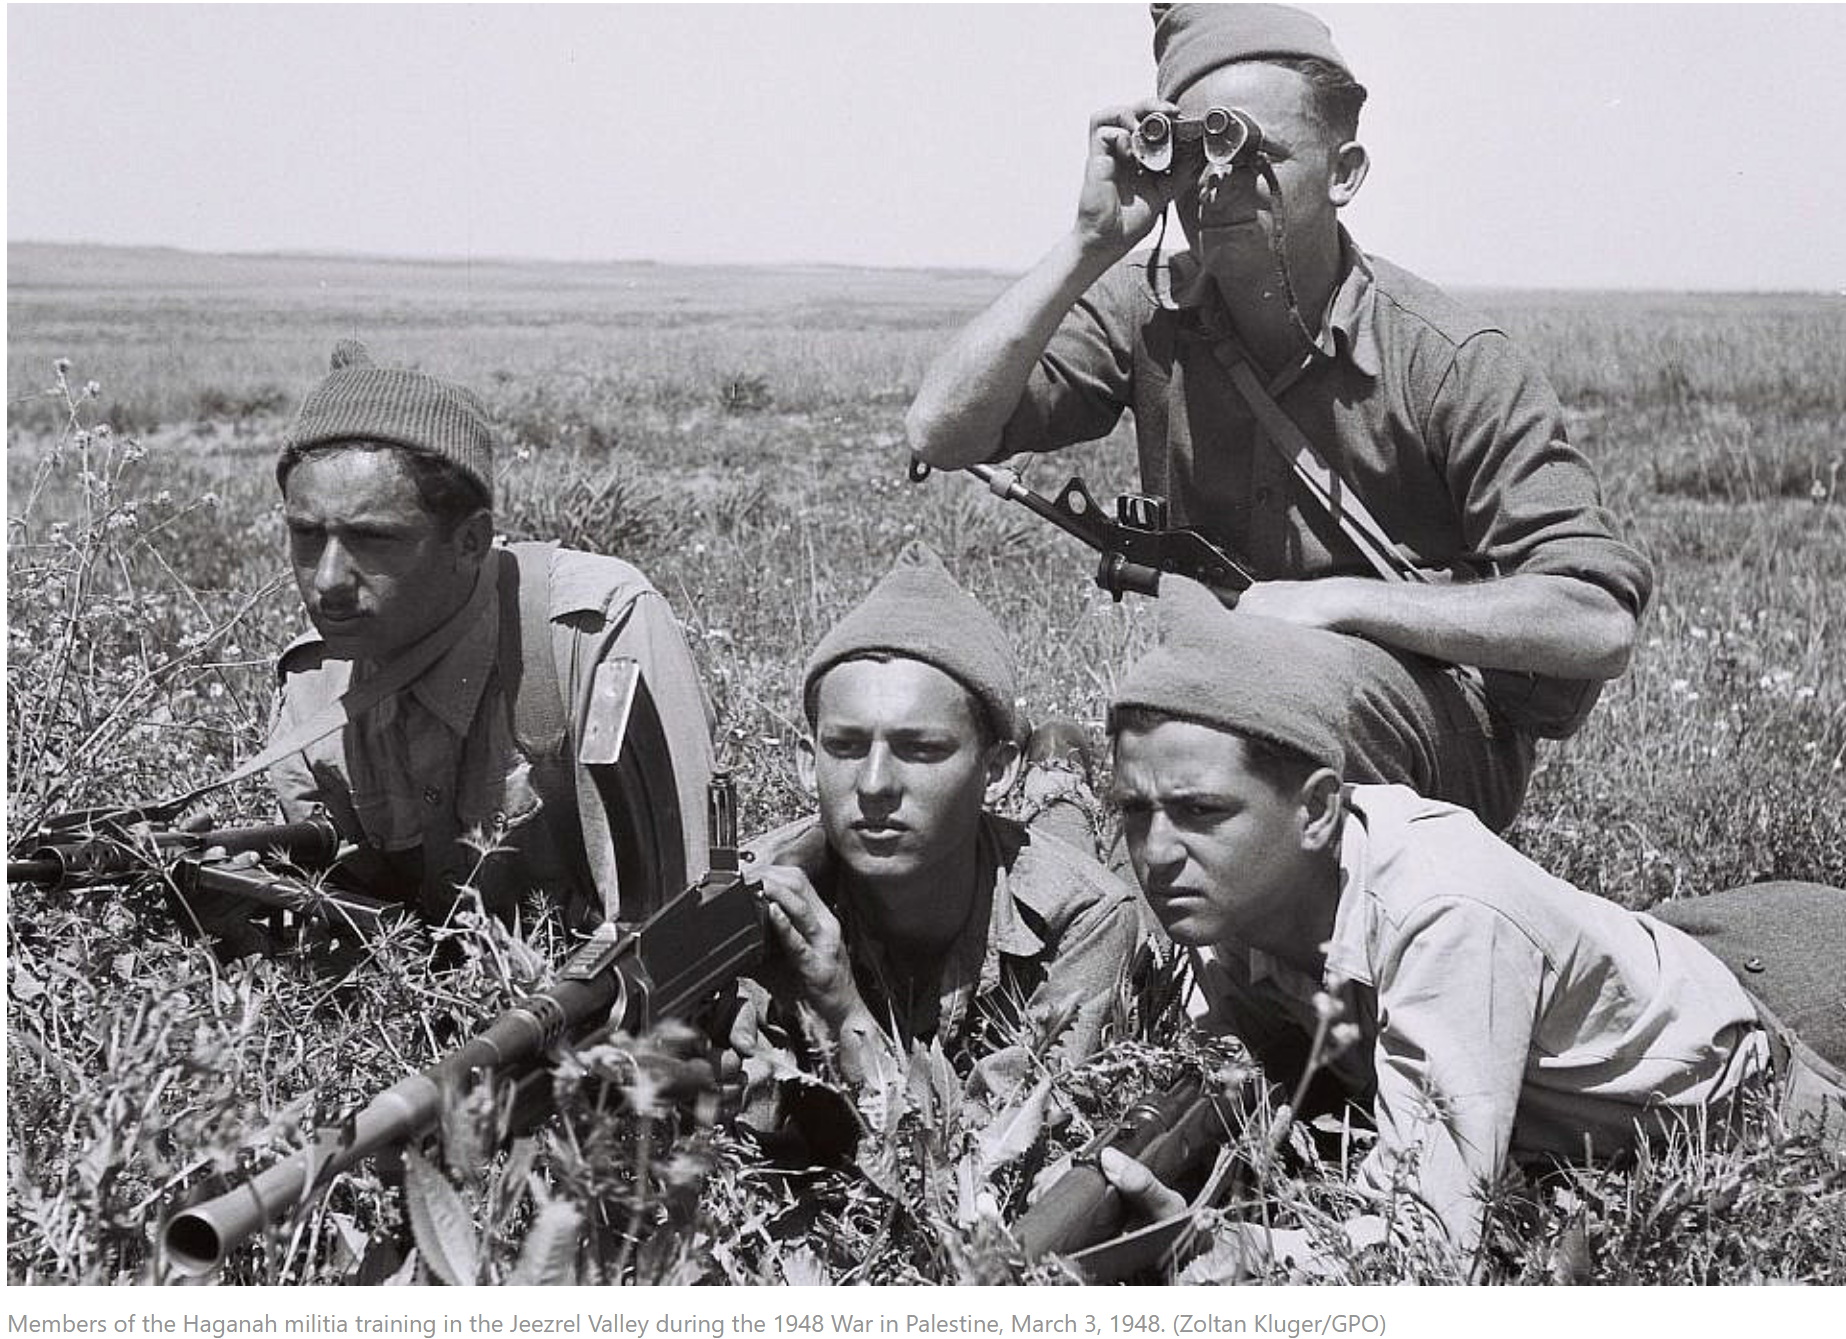 Members of the Haganah militia training in the Jeezrel Valley during the 1948 War in Palestine, March 3, 1948.